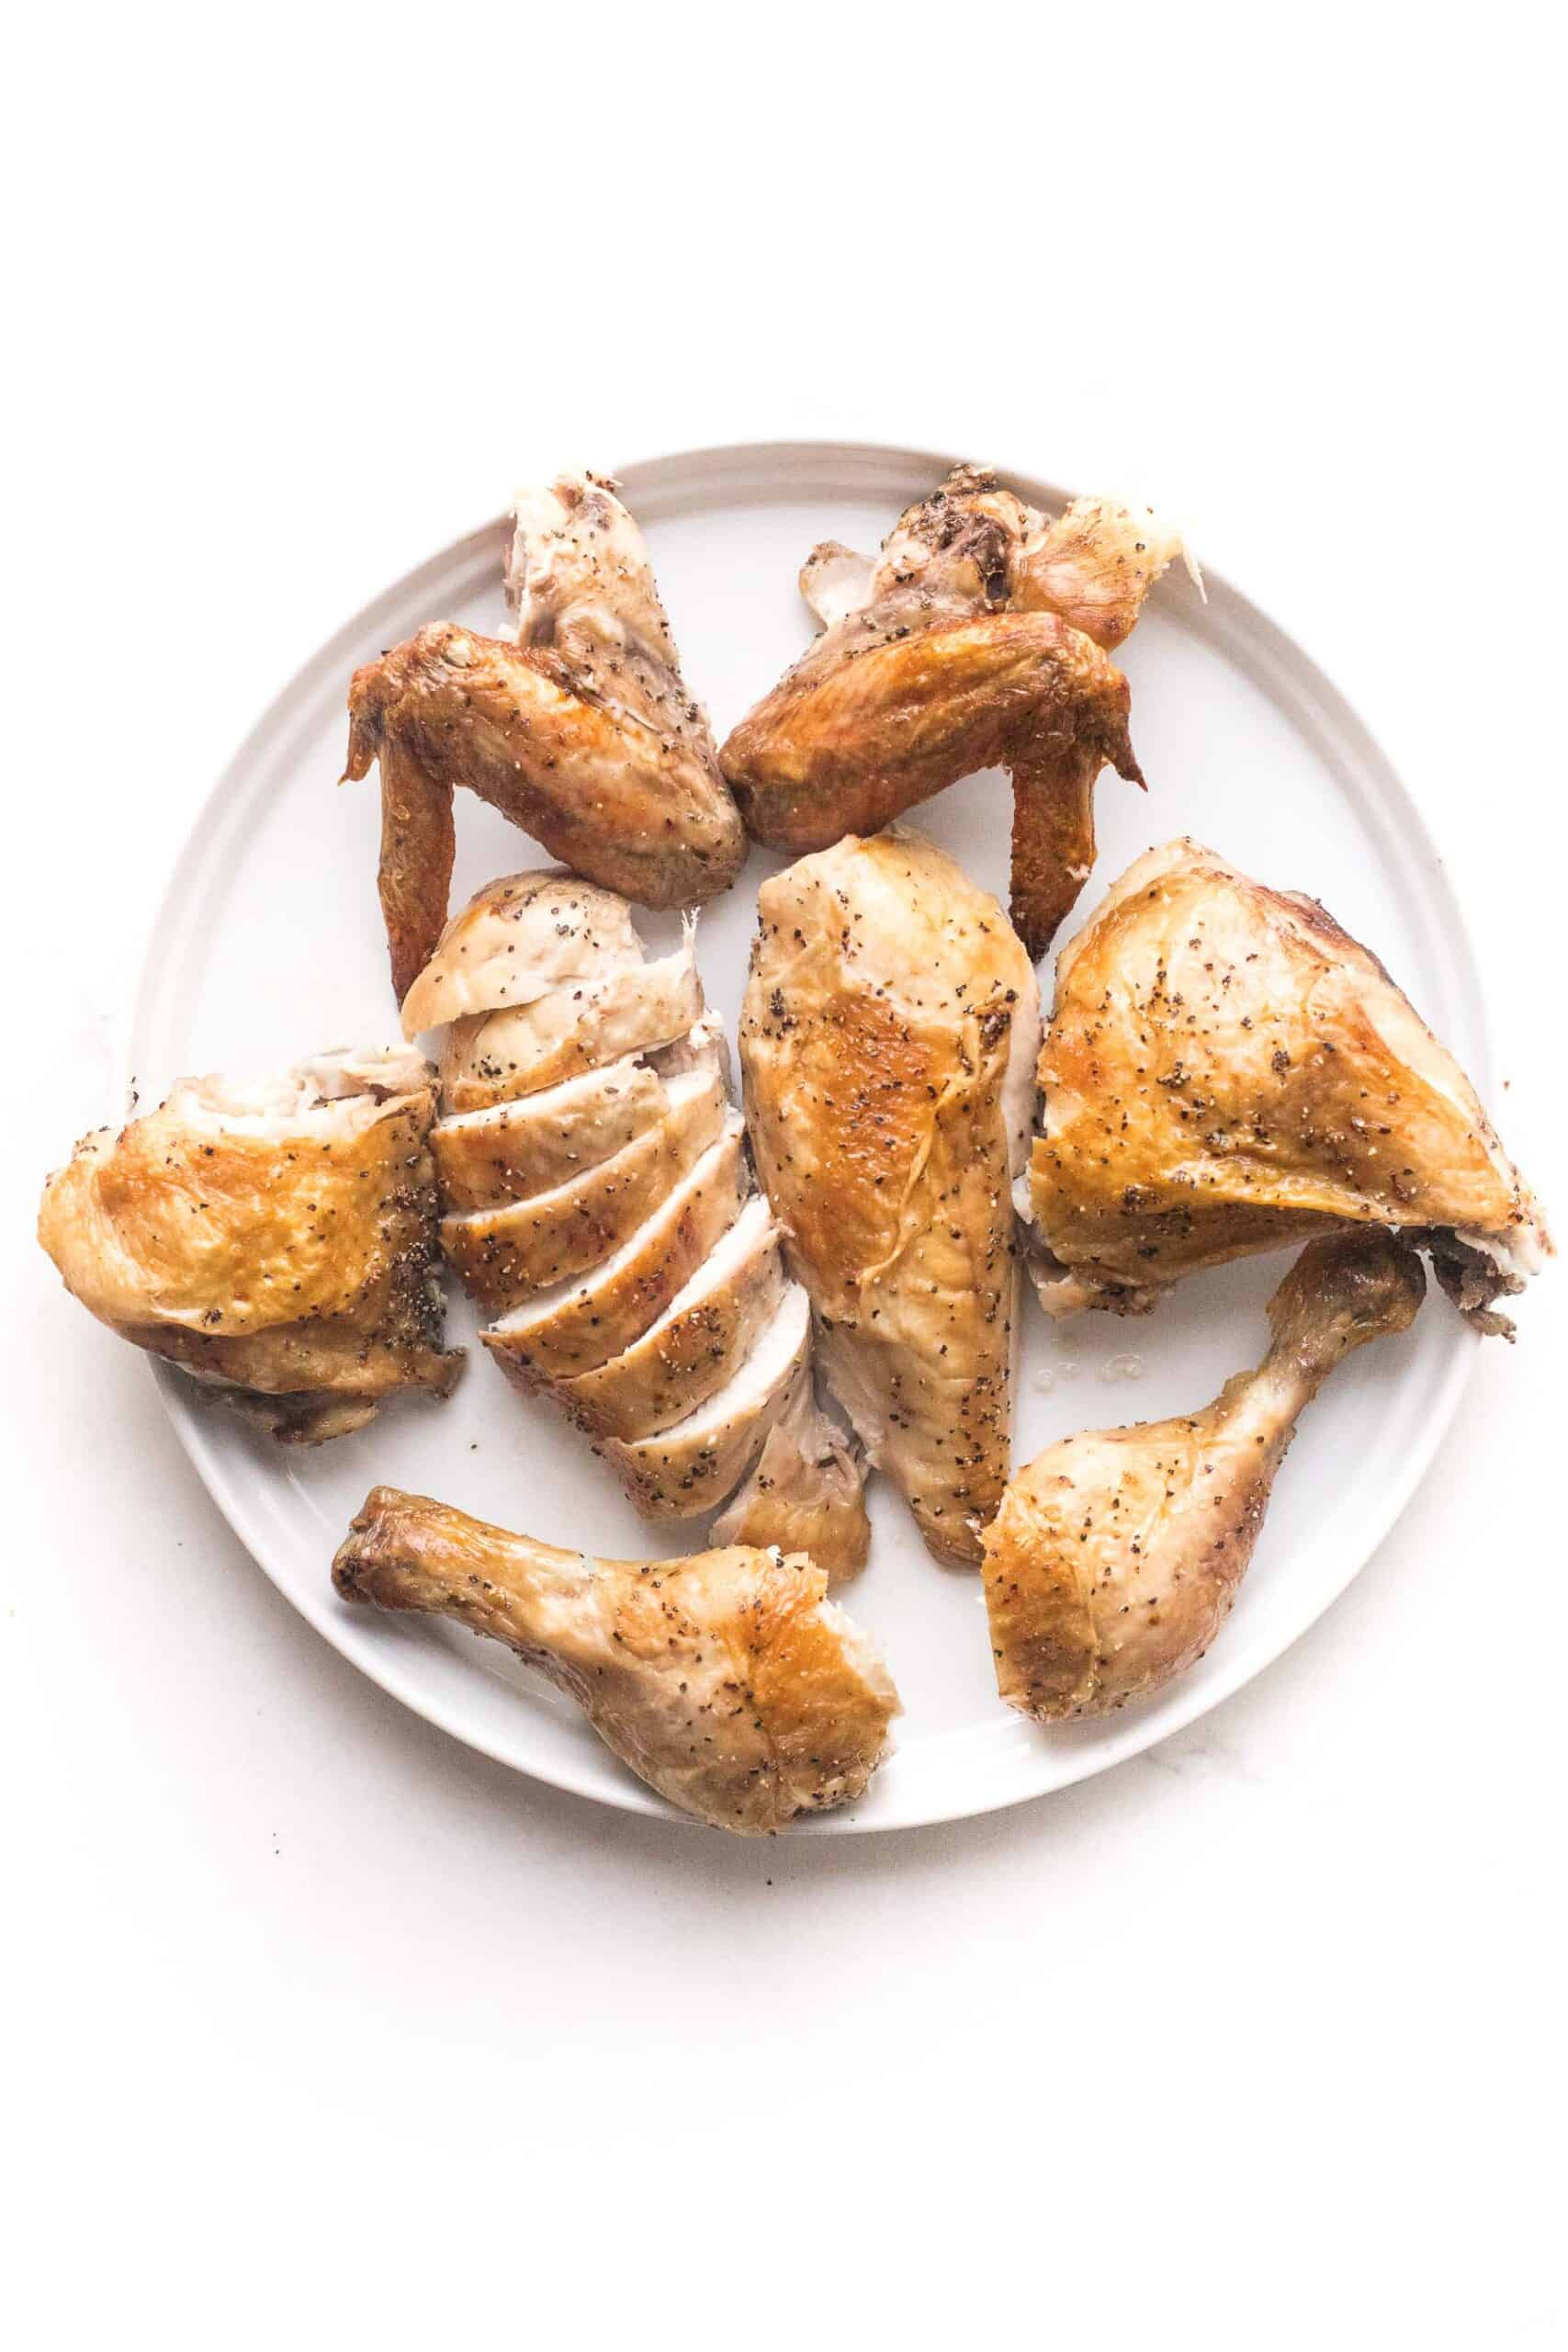 carved chicken in 8 pieces